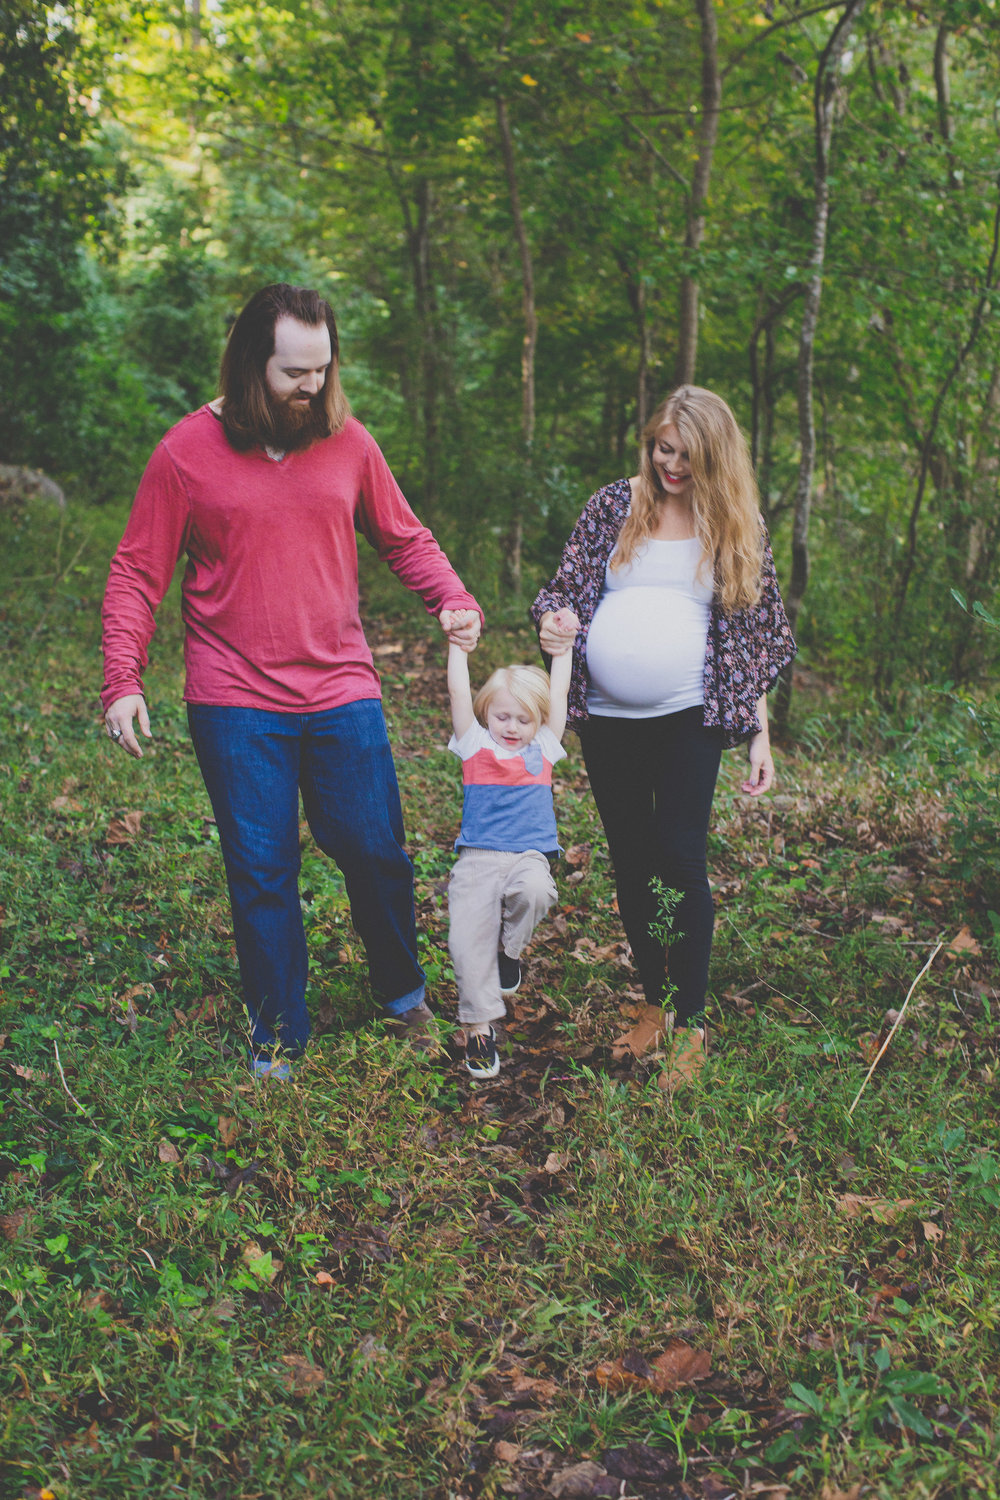 family nature bohemian lifestyle maternity photo